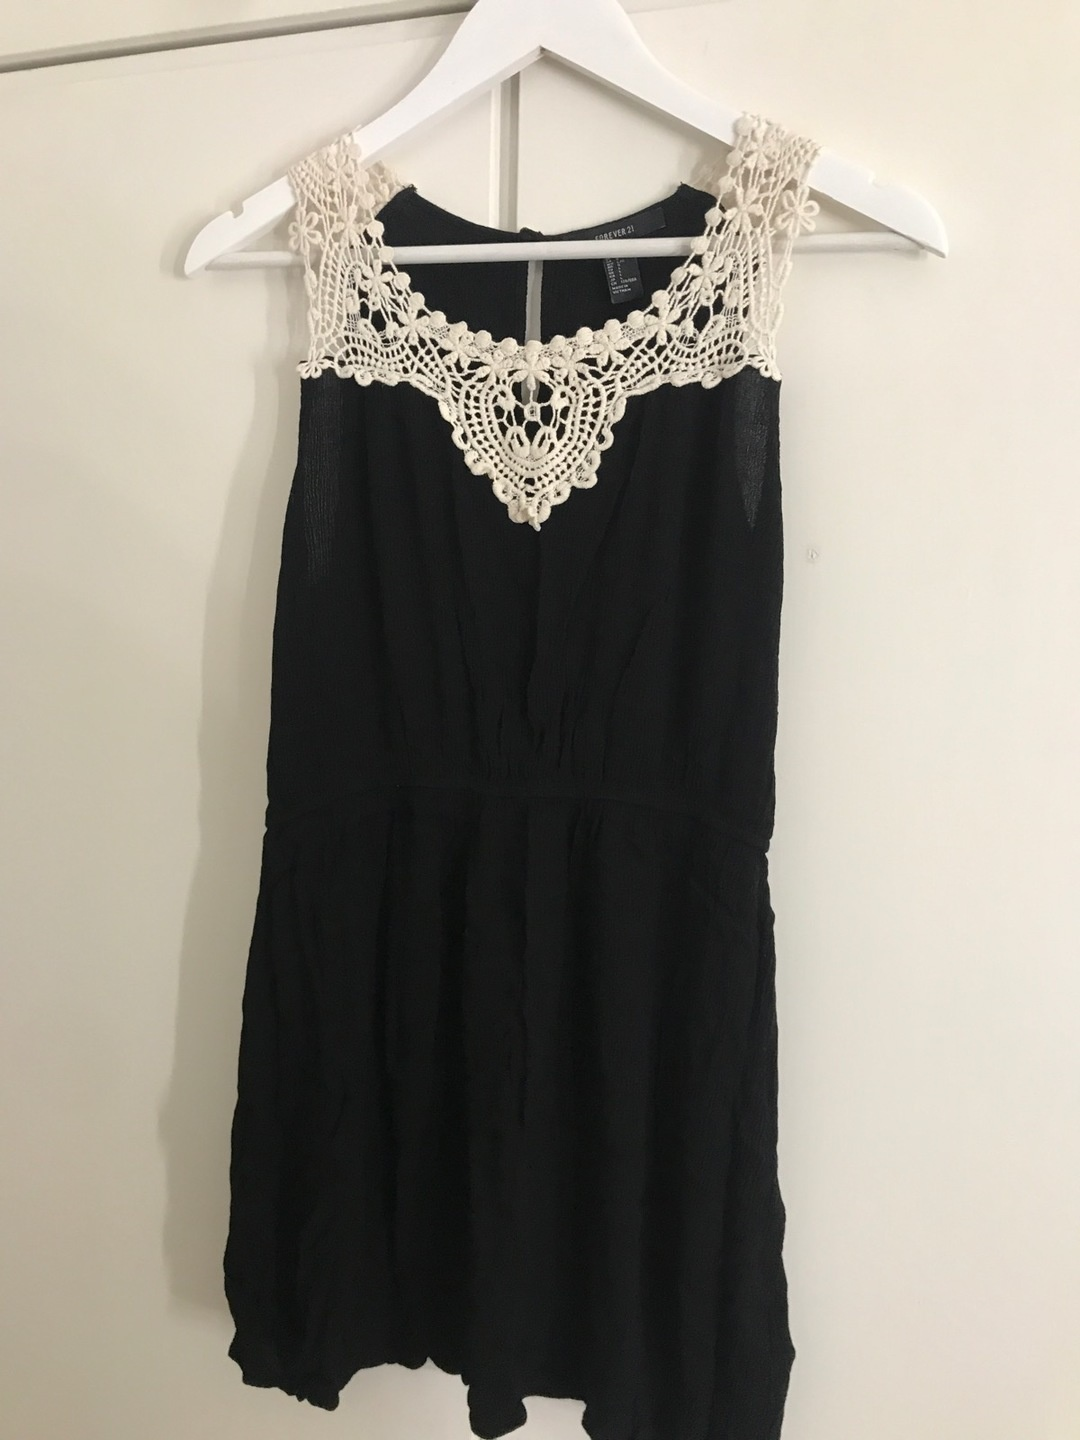 Women's dresses - FOREVER 21 photo 1